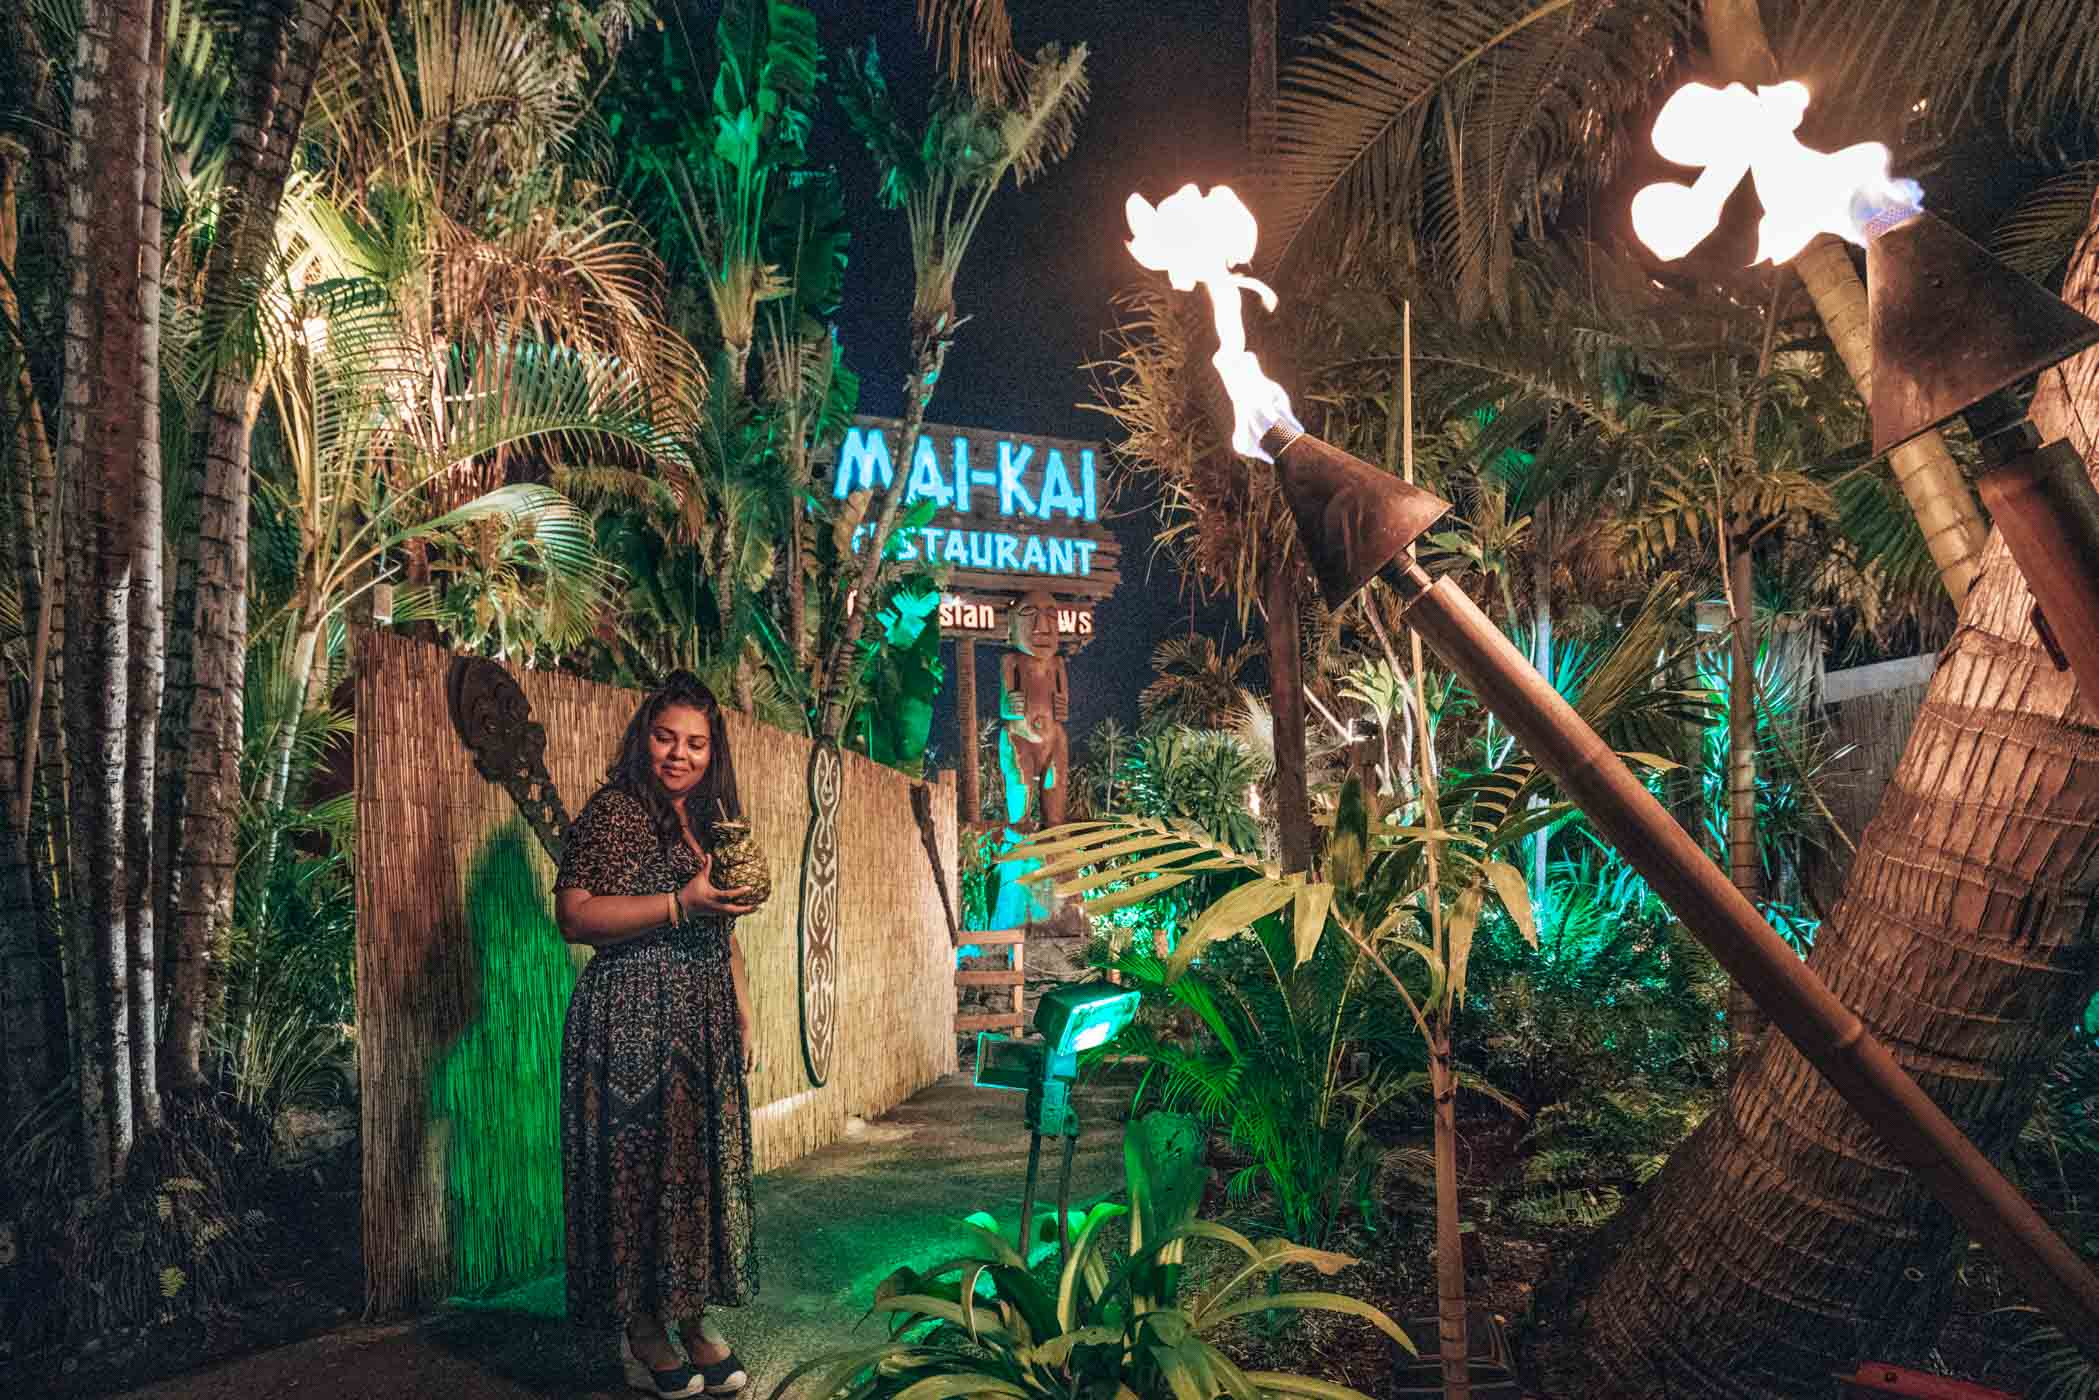 Checking out Mai Kai in Fort Lauderdale- the polynesian tiki inspired restaurant, must be on your list of things to do in Fort Lauderdale